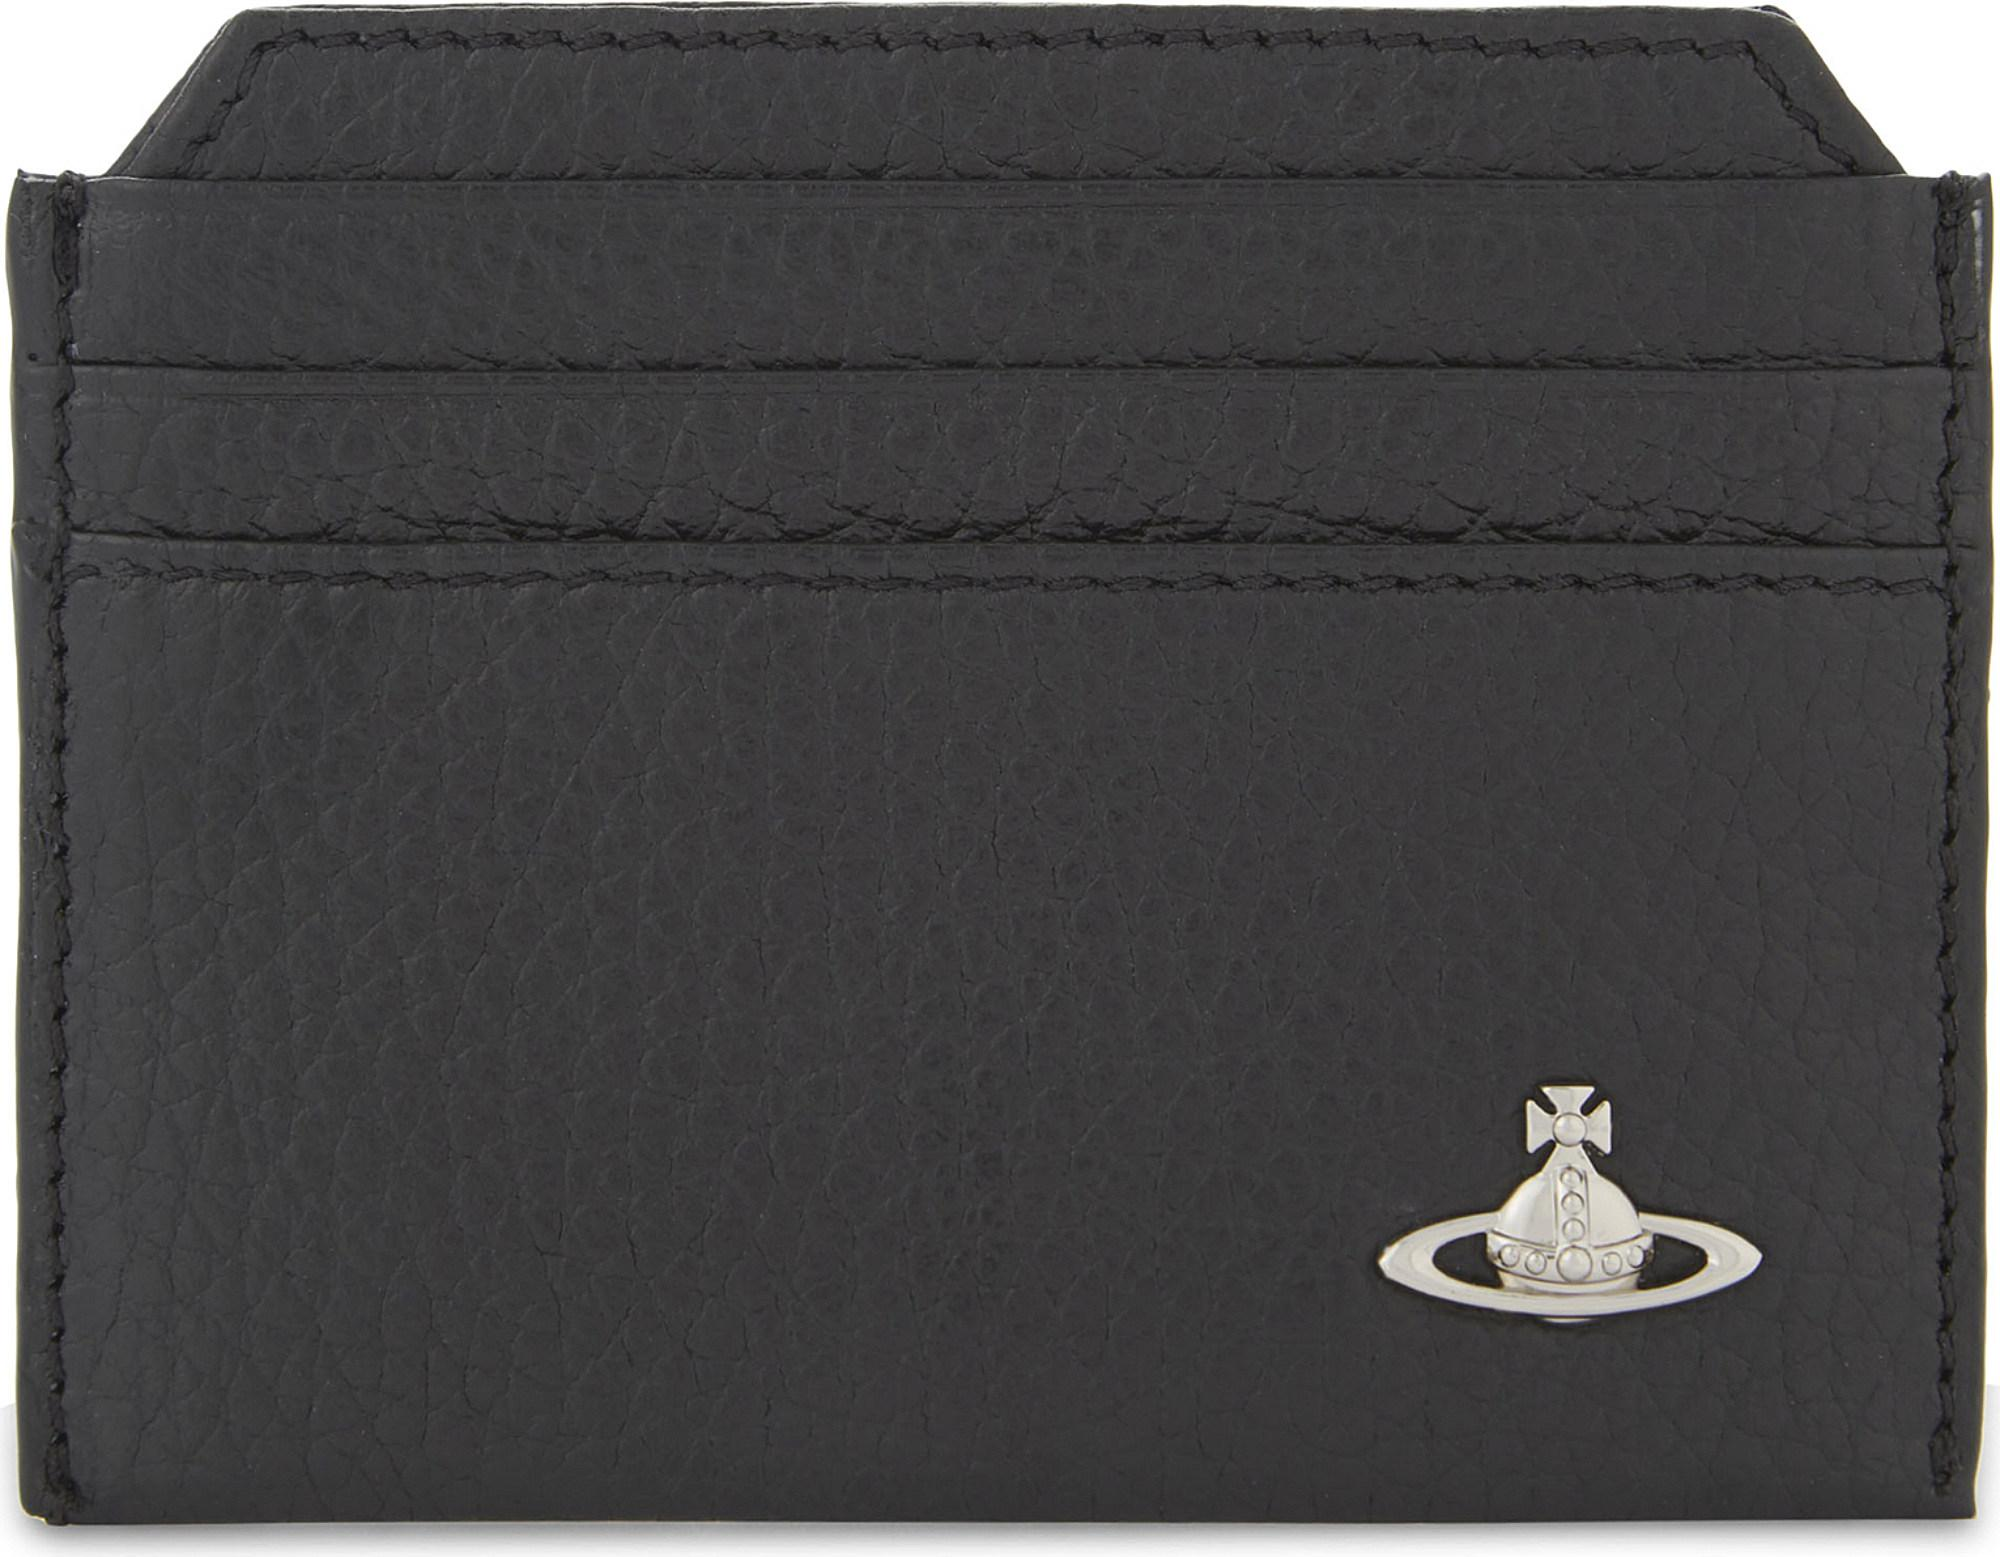 f71413a344b Lyst - Vivienne Westwood Milano Grained Leather Card Holder in Black ...